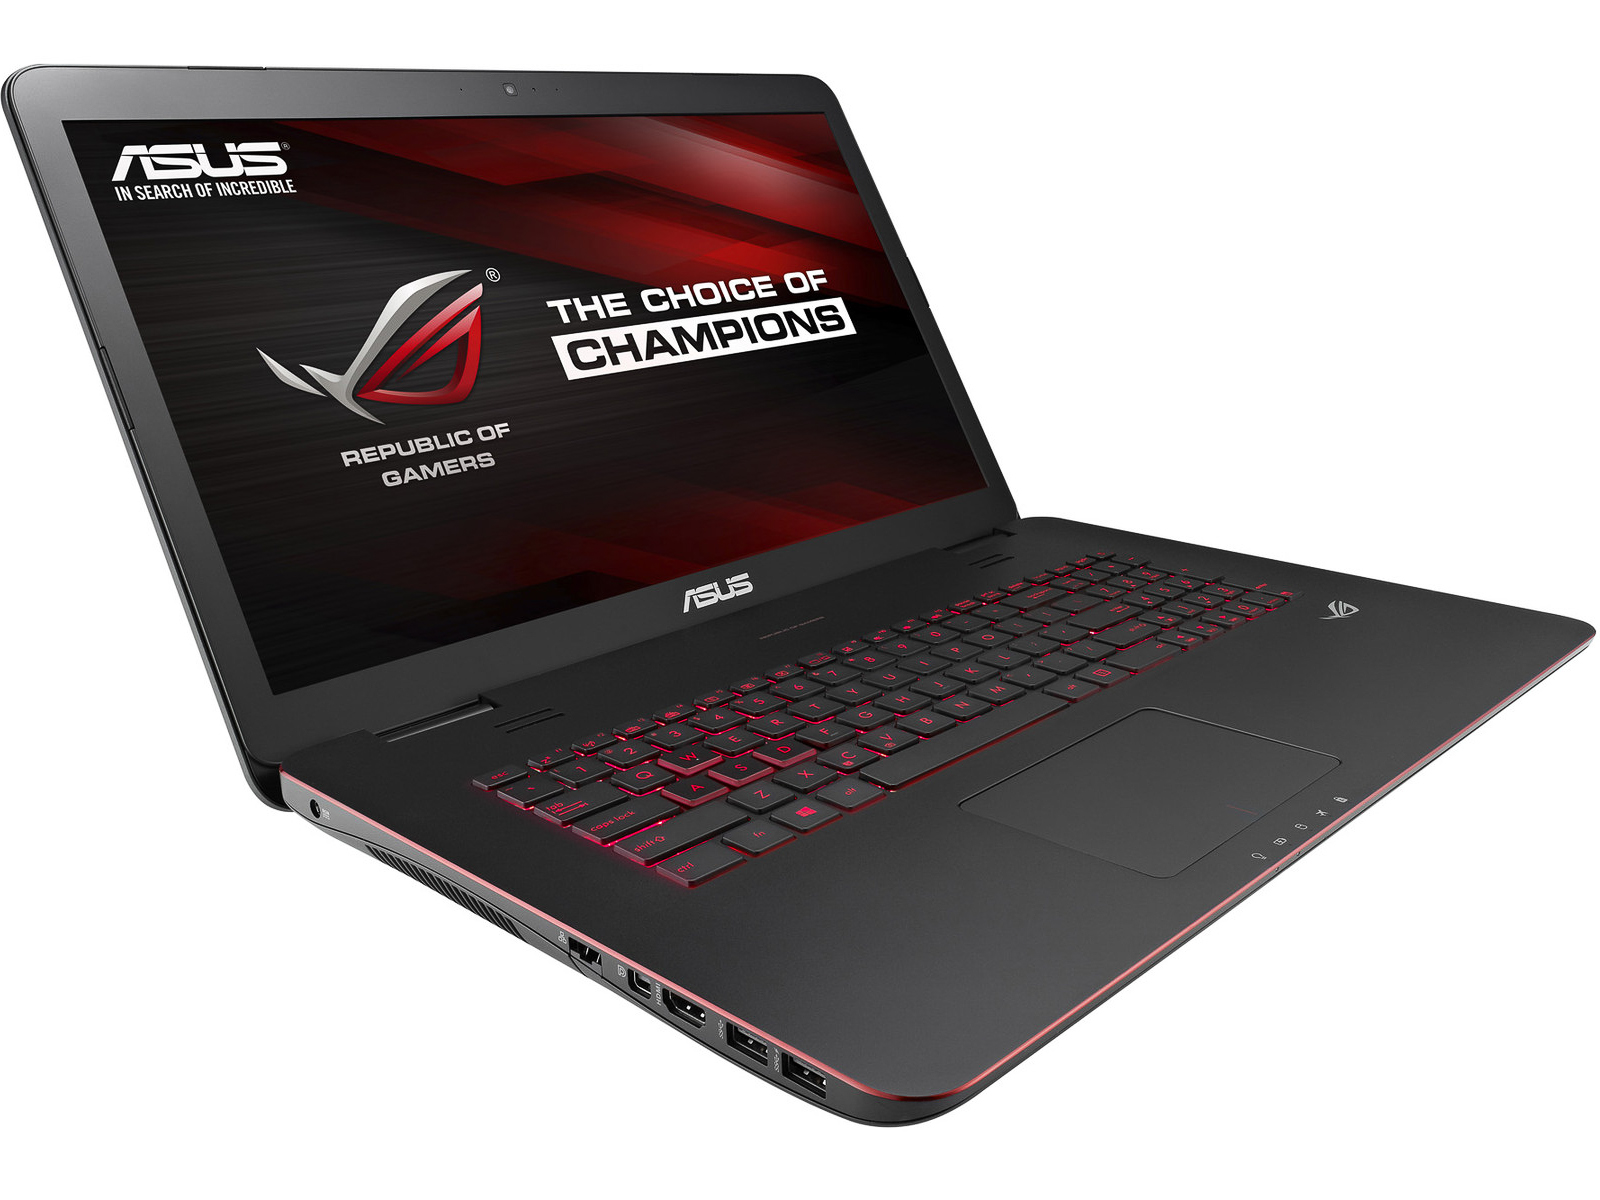 ASUS ROG G771JM REALTEK LAN DRIVERS FOR WINDOWS XP